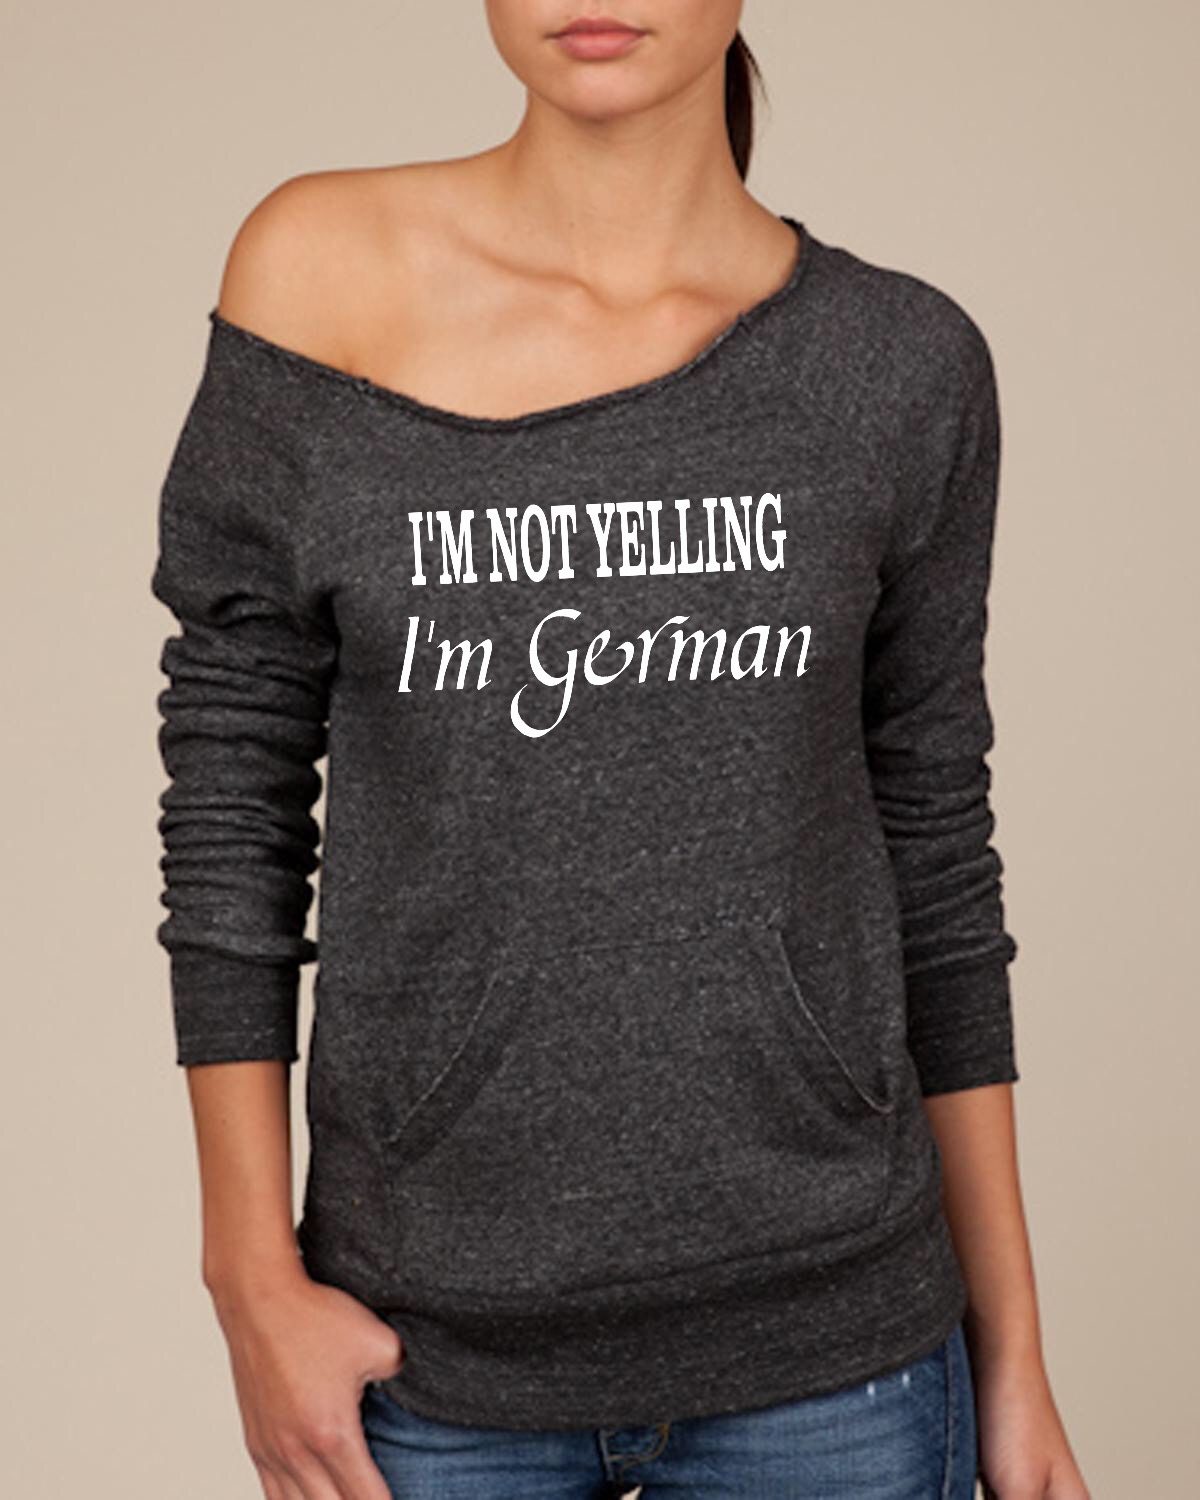 I'm Not Yelling.  I'm German.  Women's Scoop Neck Sweatshirt